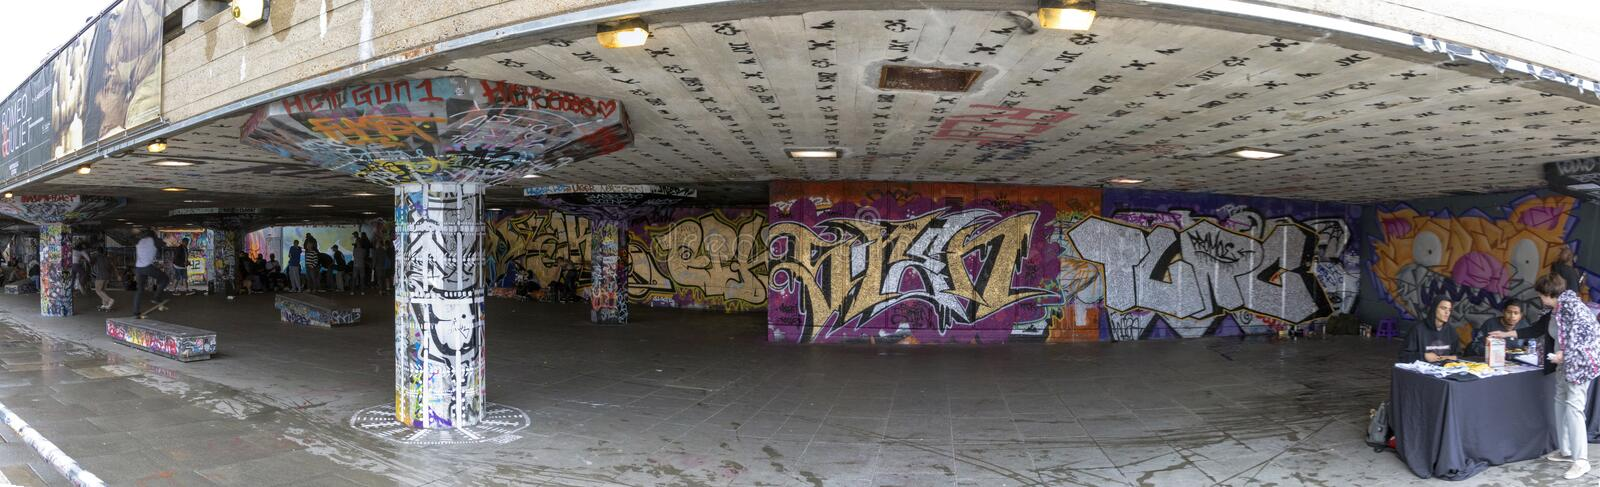 Southbank Skate Park in London. London - July 29, 2017: A panoramic photo of the Southbank Skatepark undercroft, comprised of ledges, banks and stairs covered royalty free stock photography